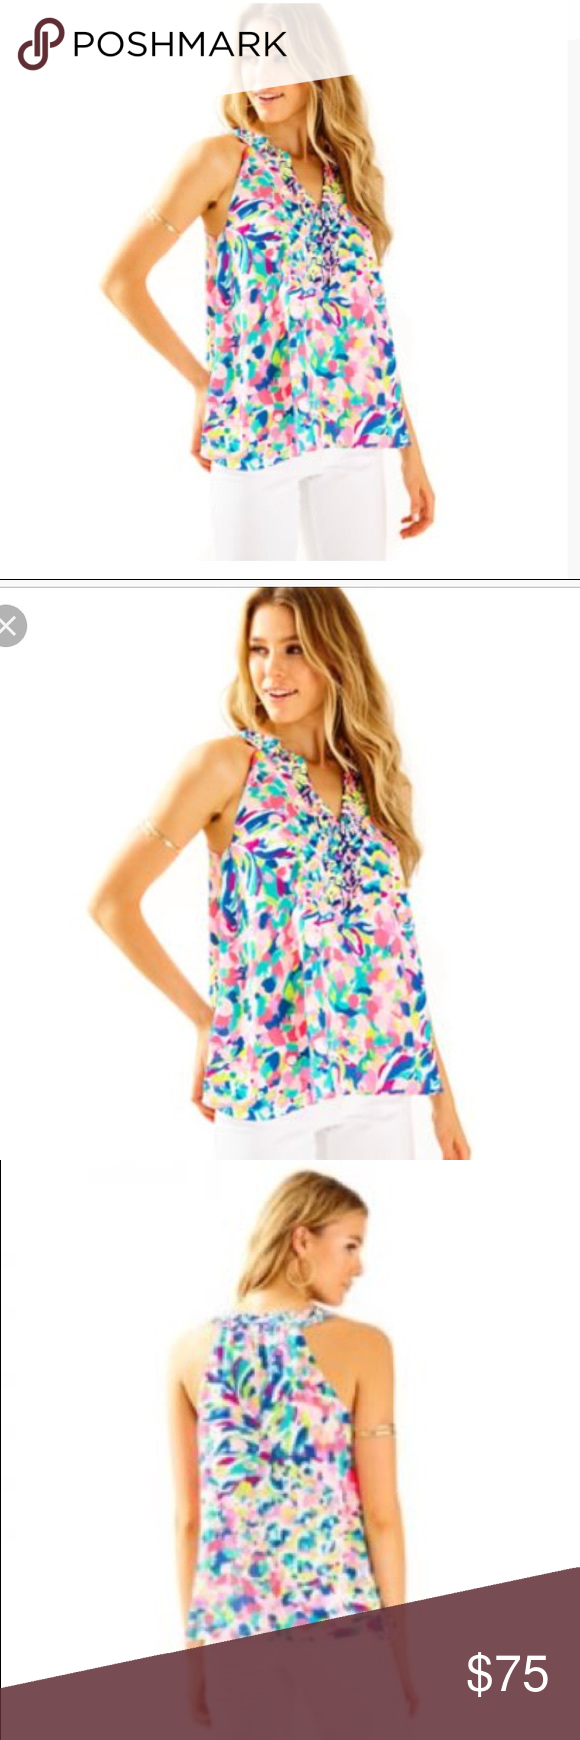 d18b7c55c1d923 NWT Lilly Pulitzer Achelle Top in Pina Colada Club NEw with Tags! Lilly  Pulitzer Achelle